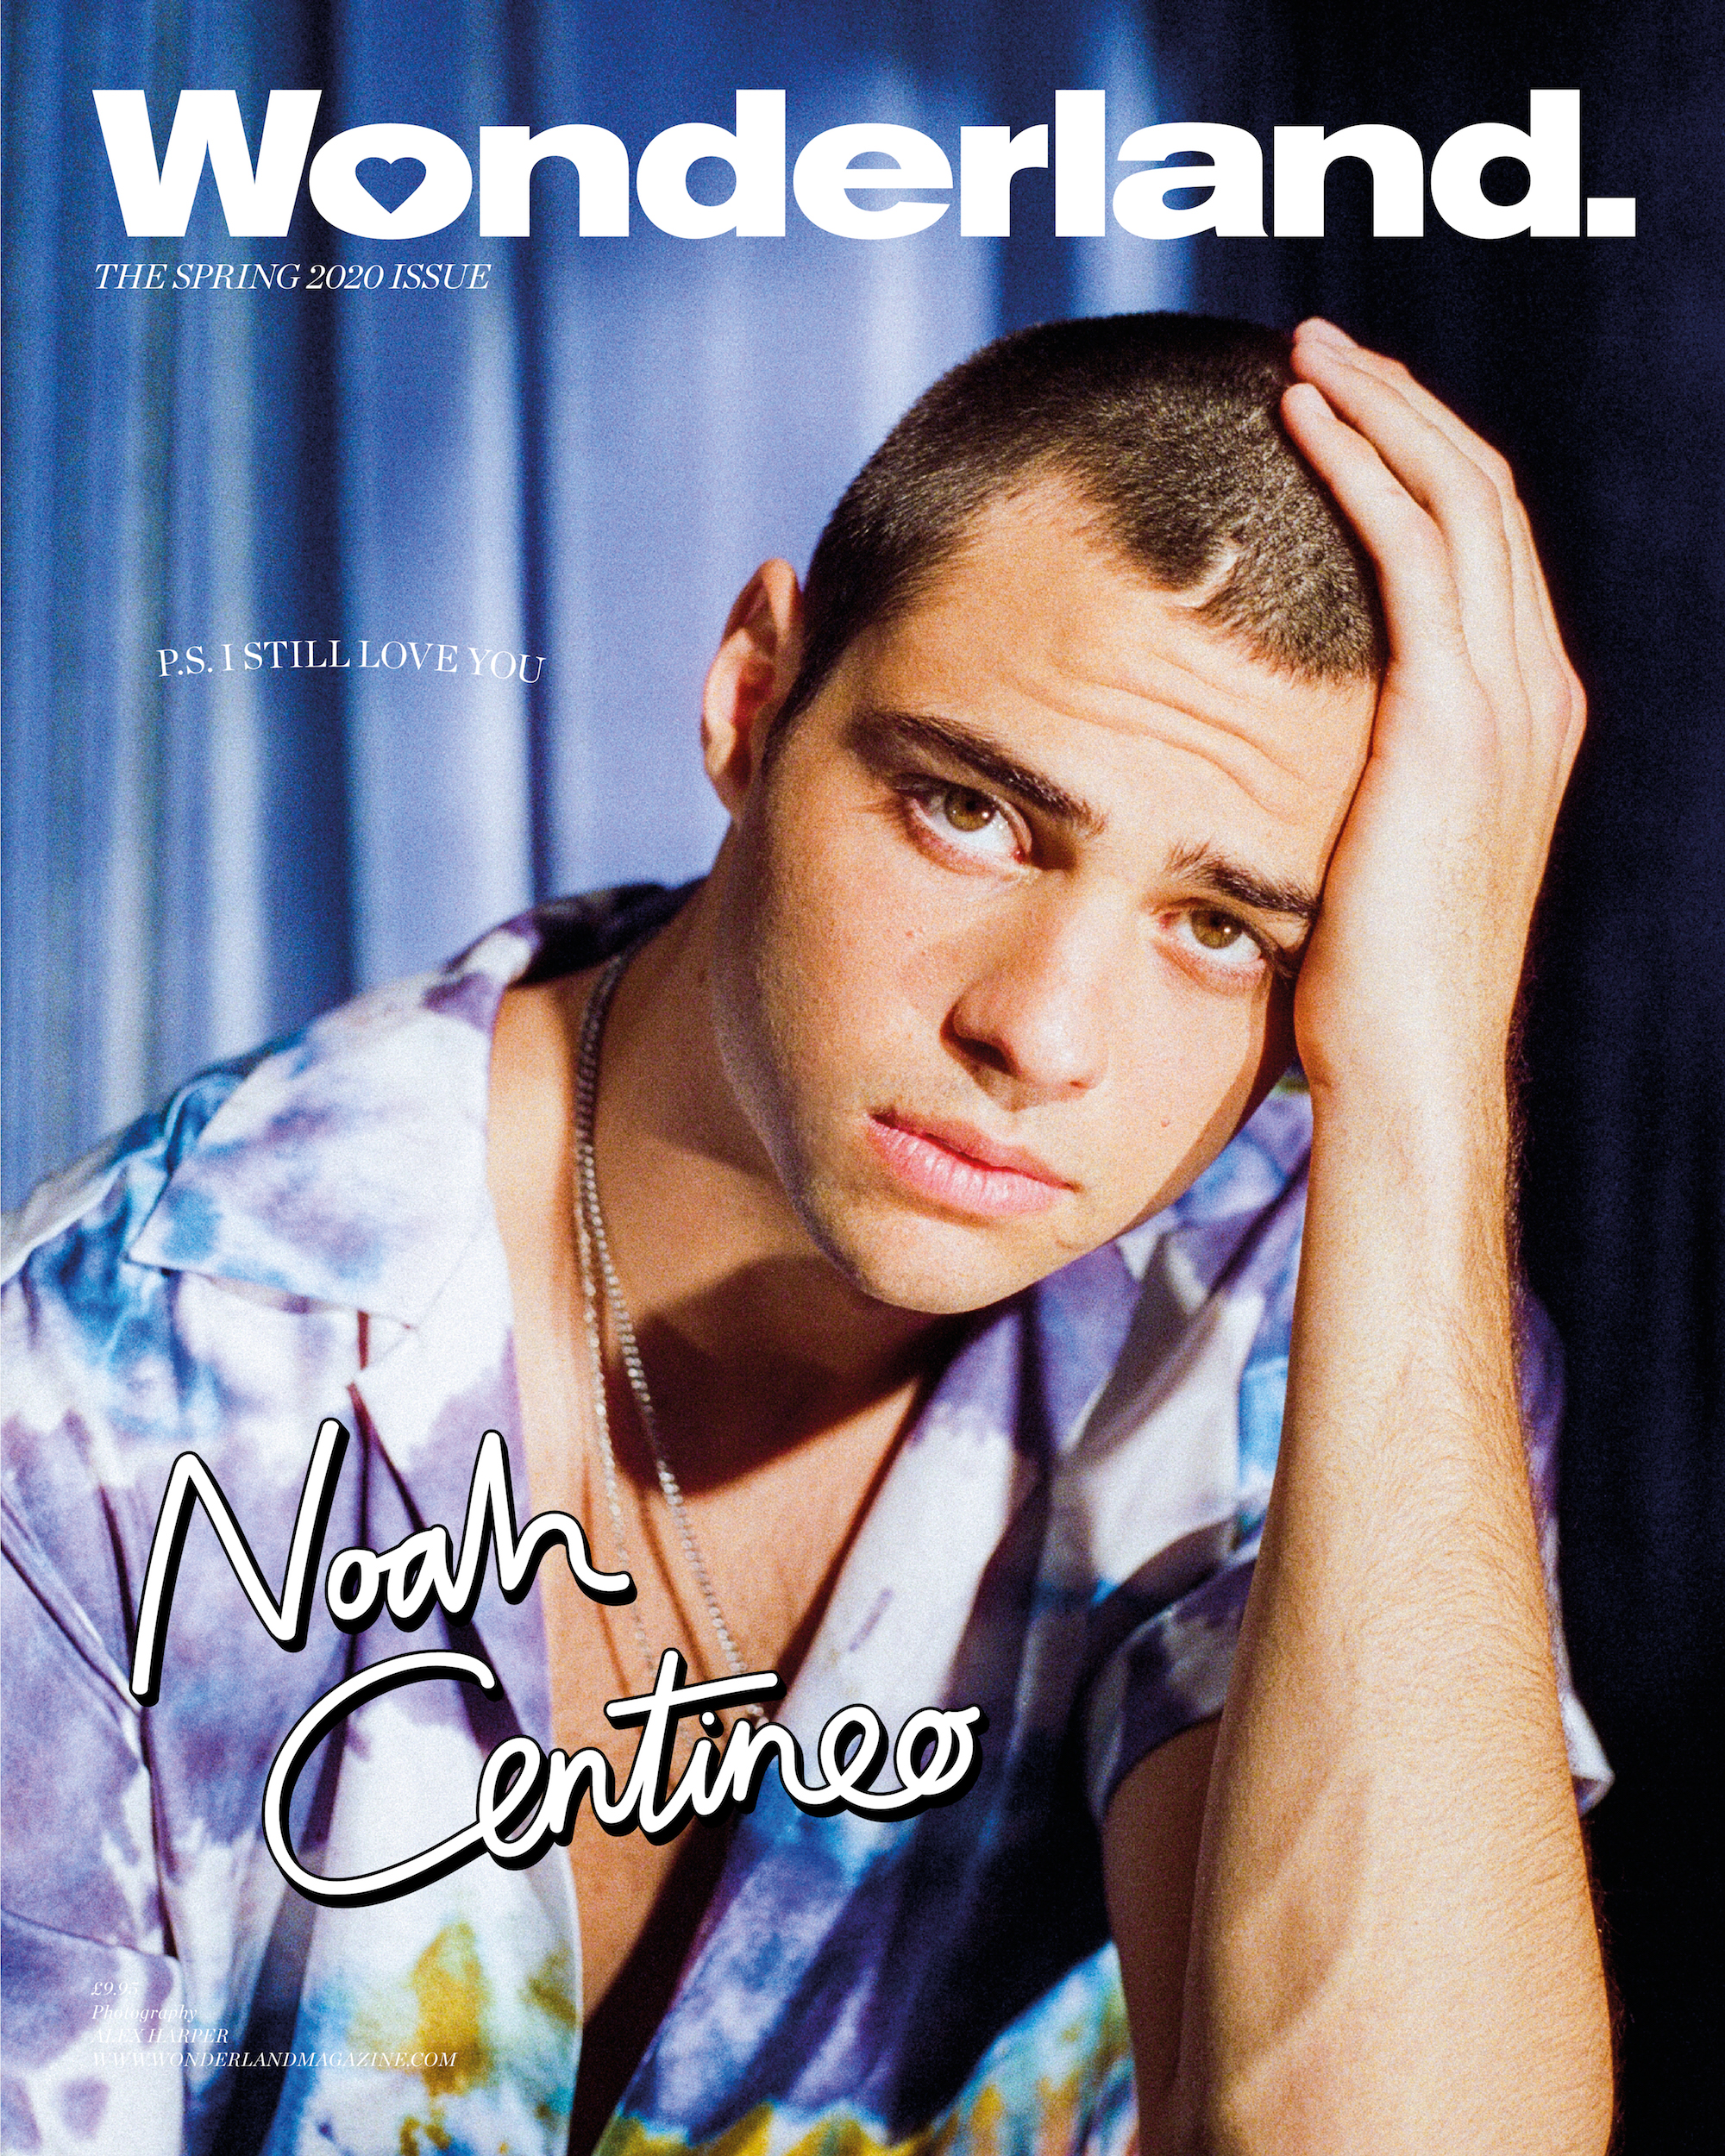 Noah Centineo covers the Spring issue